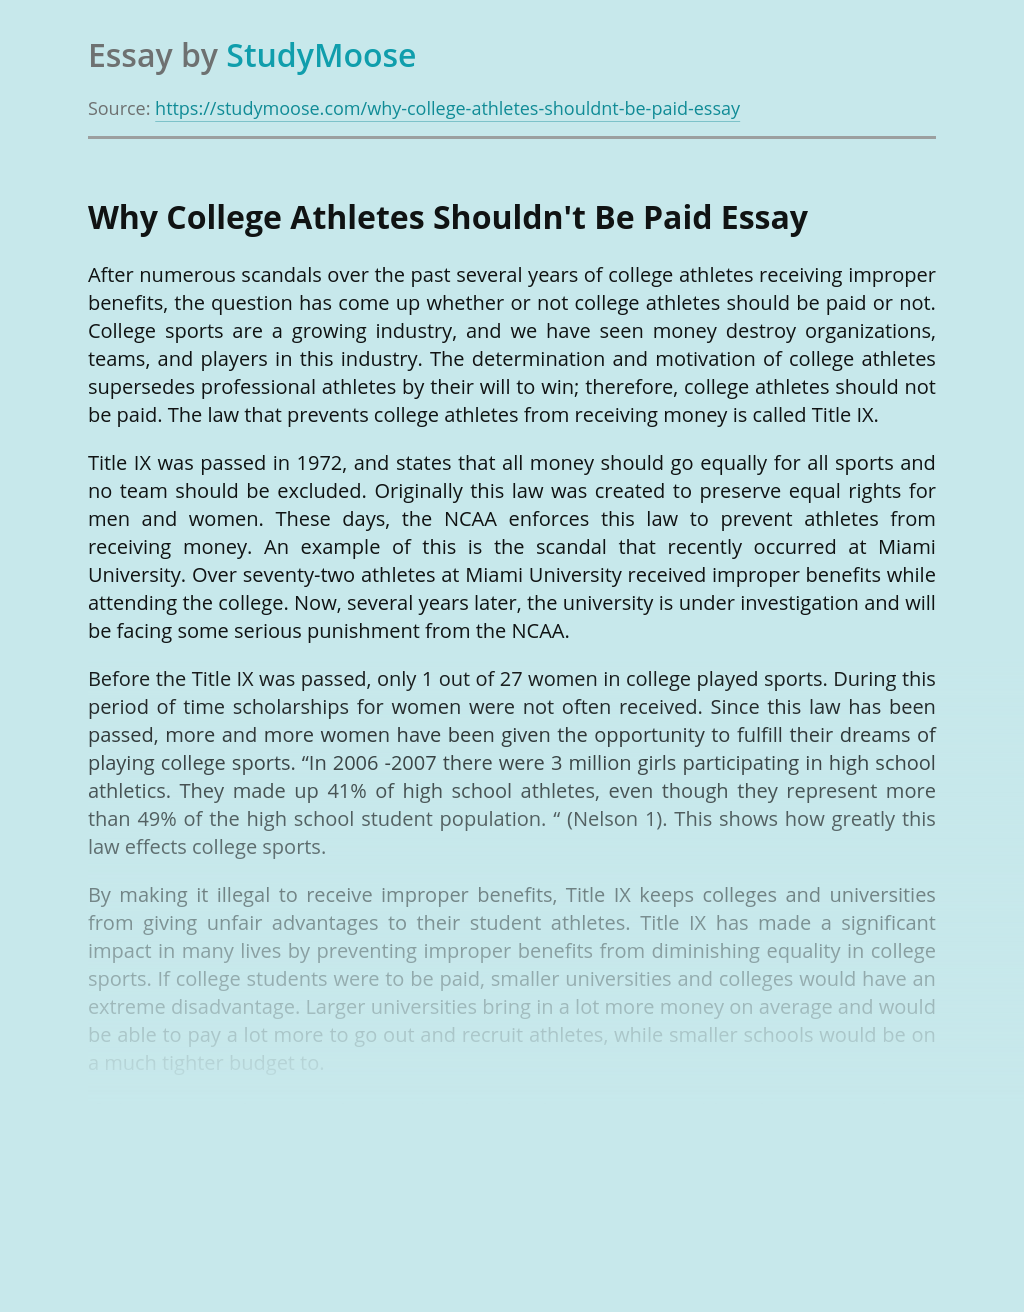 Why College Athletes Shouldn't Be Paid